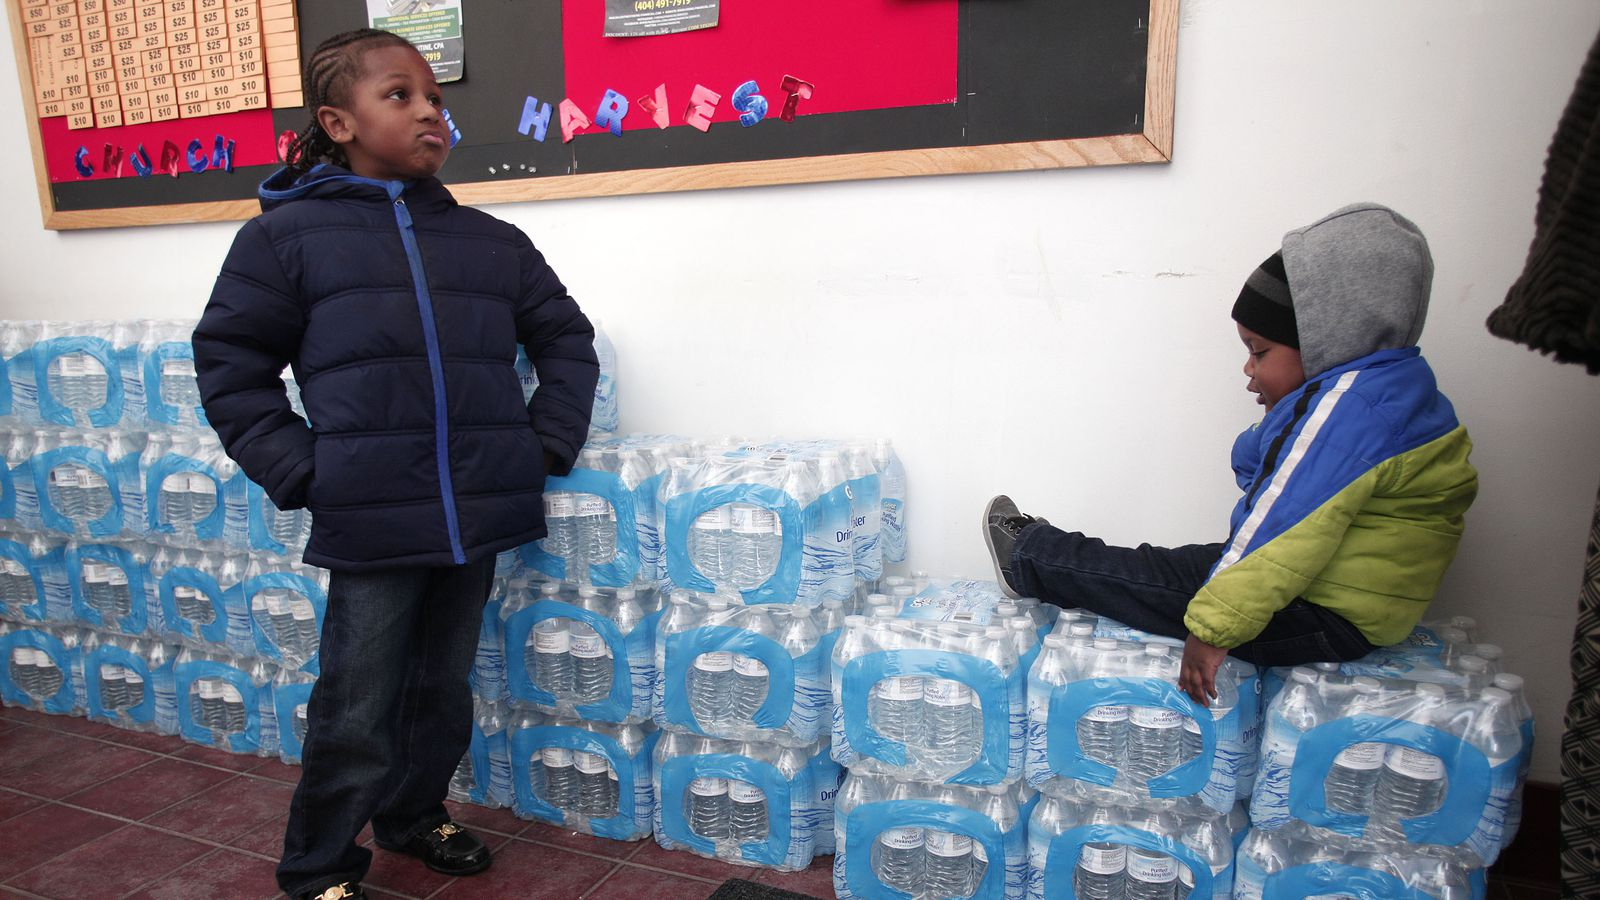 Flint, Michigan's water crisis: what the national media got wrong - Vox